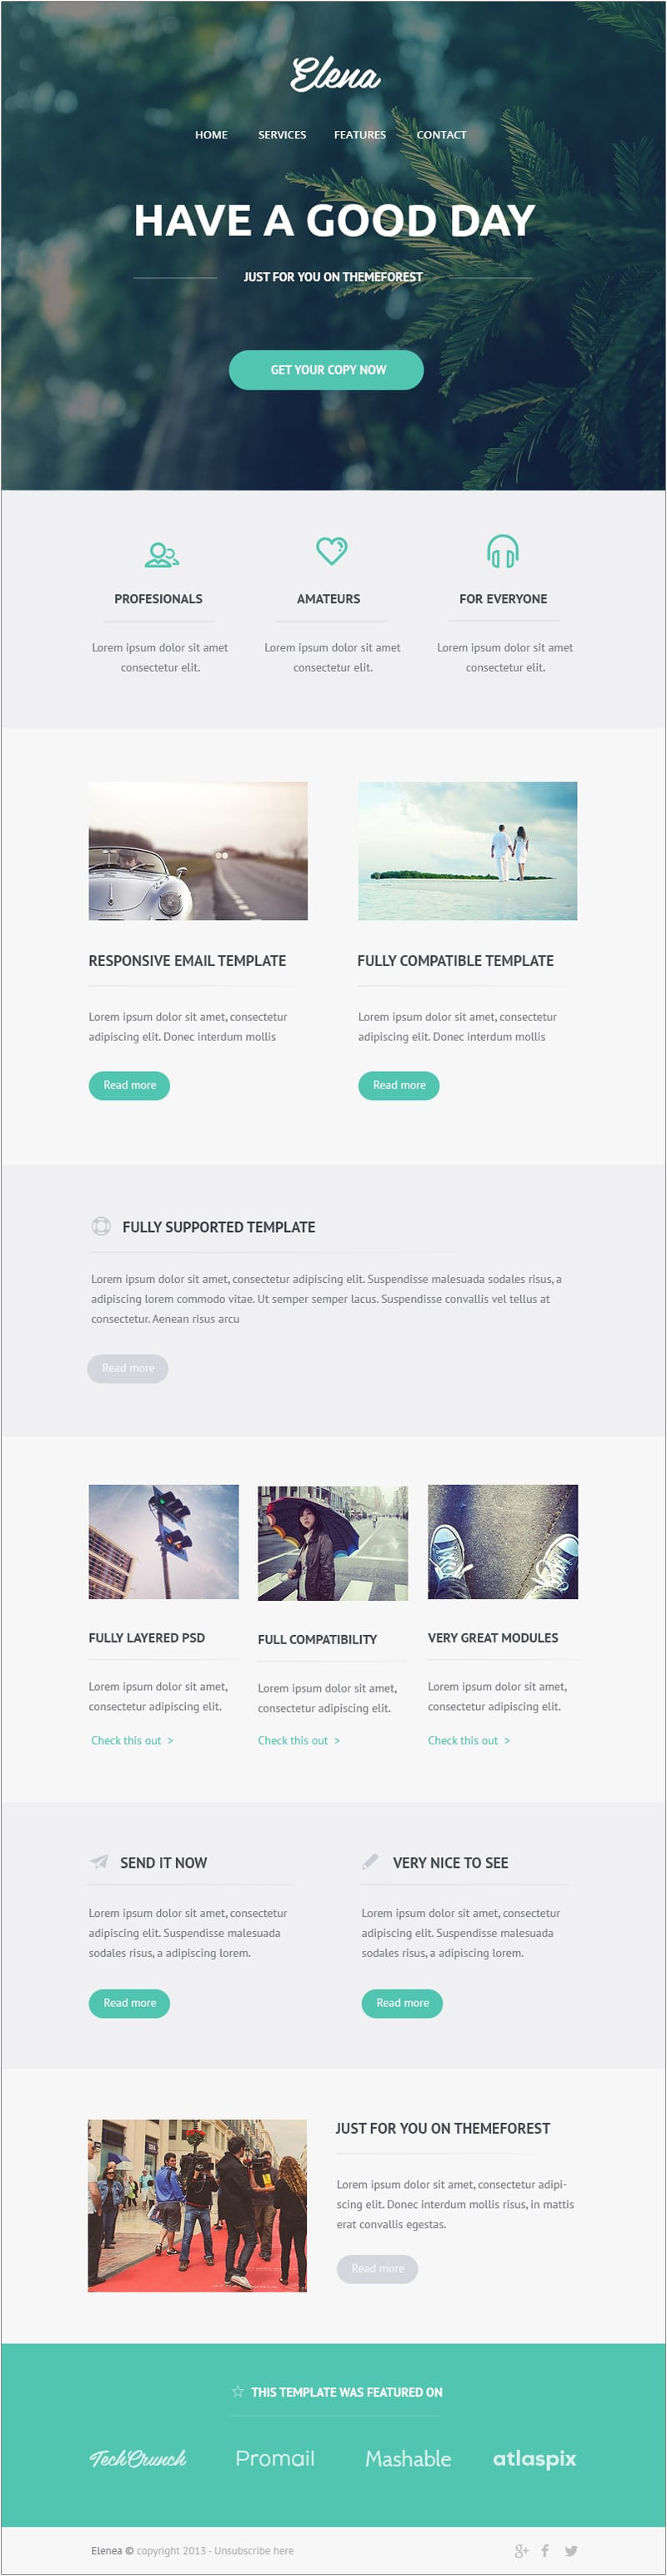 Web Design Email Marketing Templates Free Email Newsletter Templates Psd Css Author